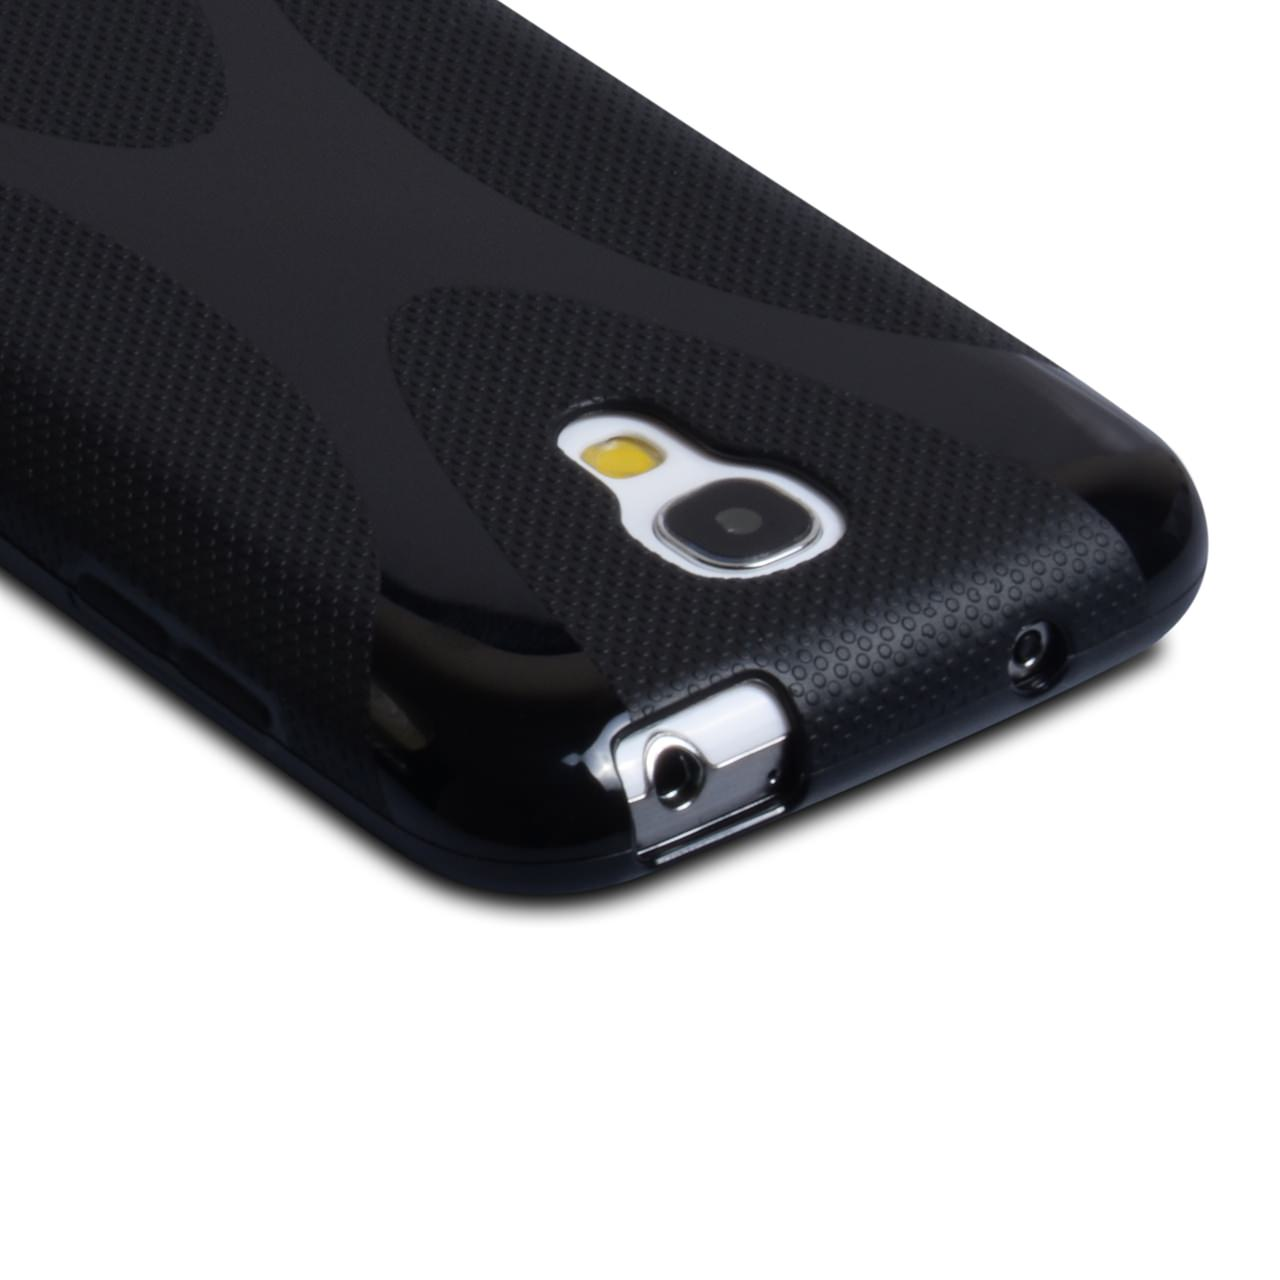 YouSave Accessories Samsung Galaxy S4 Mini Black X-Line Gel Case